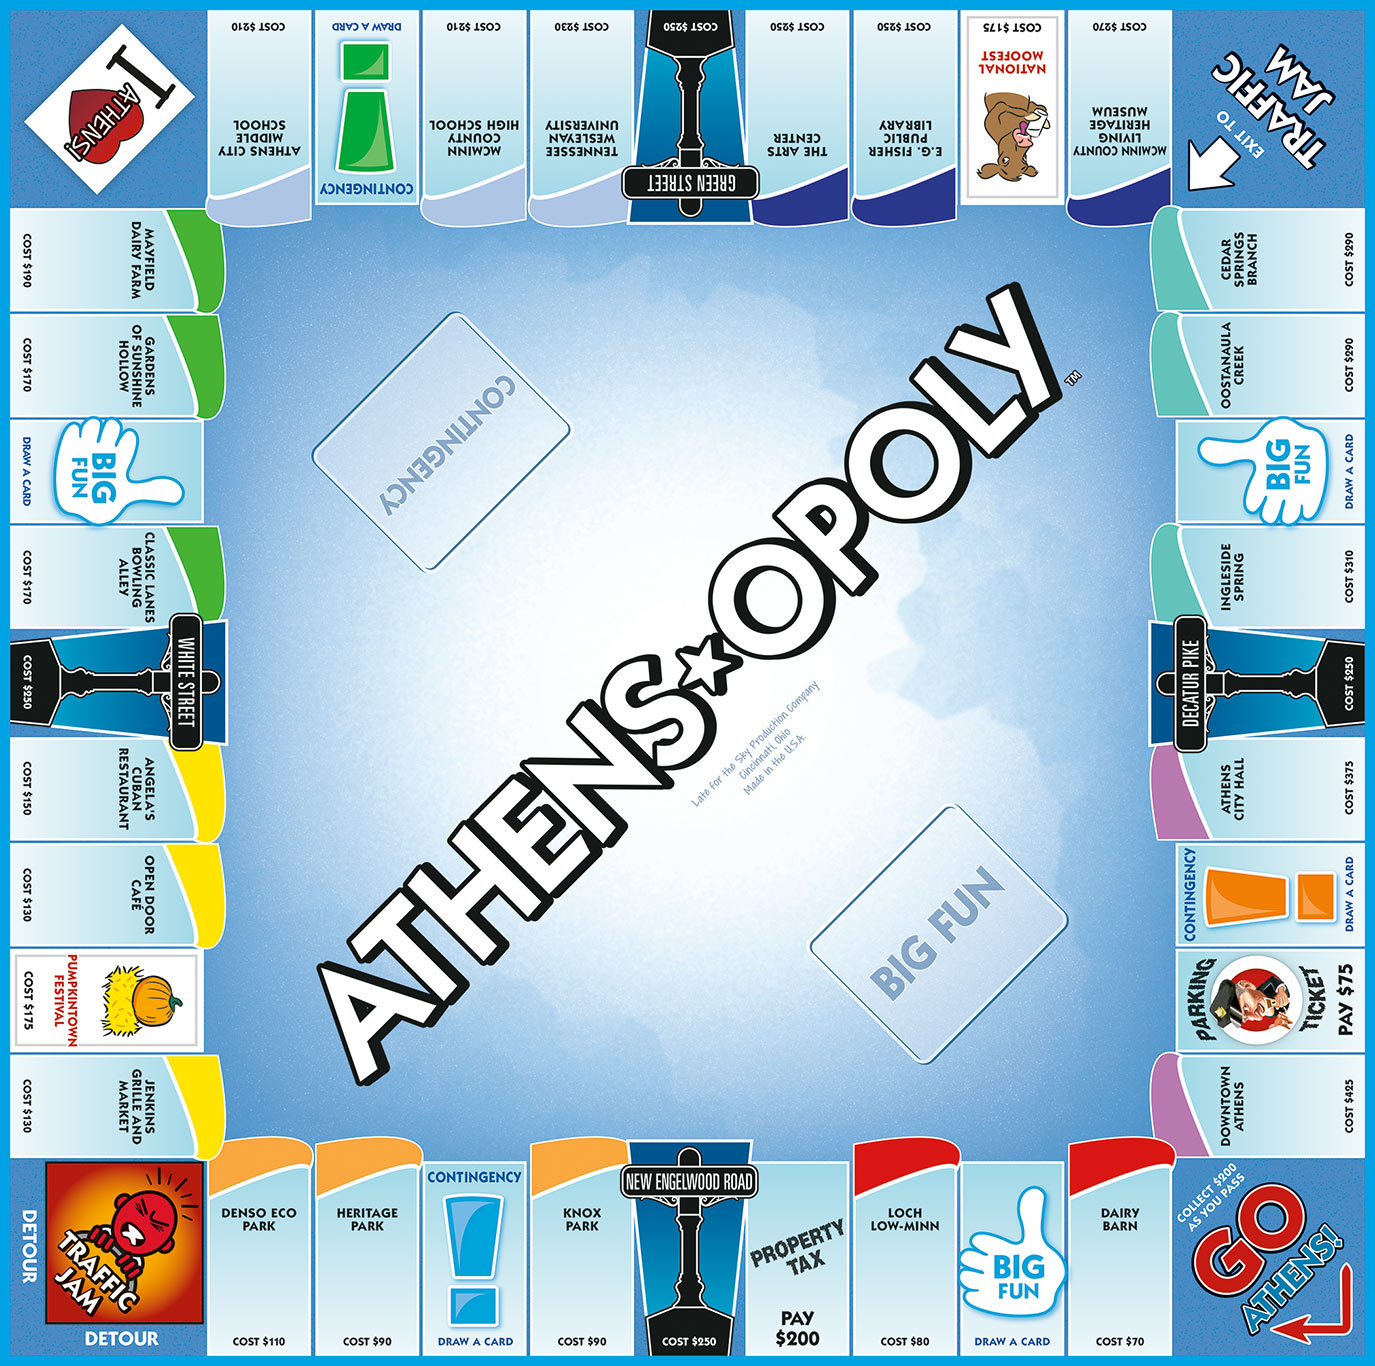 ATHENS-OPOLY Board Game